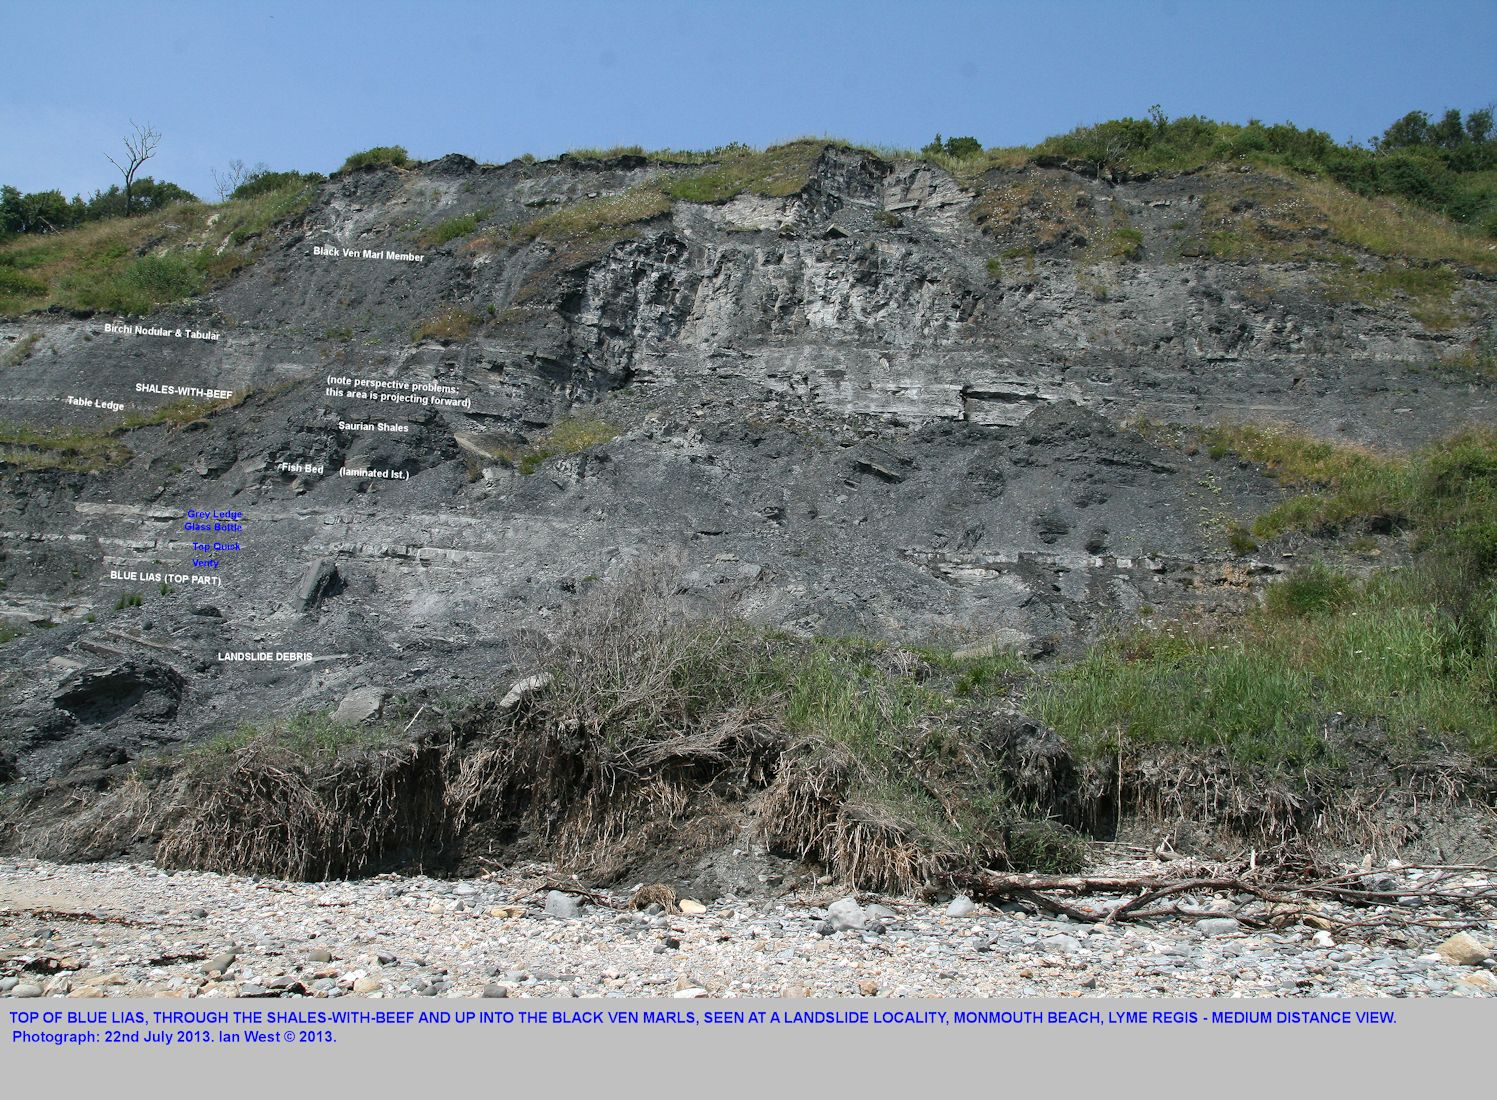 A medium distance view of the top of the Blue Lias, the Shales-with-Beef and the basal part of the Black Ven Marls, at a landslide, Monmouth Beach, Lyme Regis, Dorset, 22nd July 2013